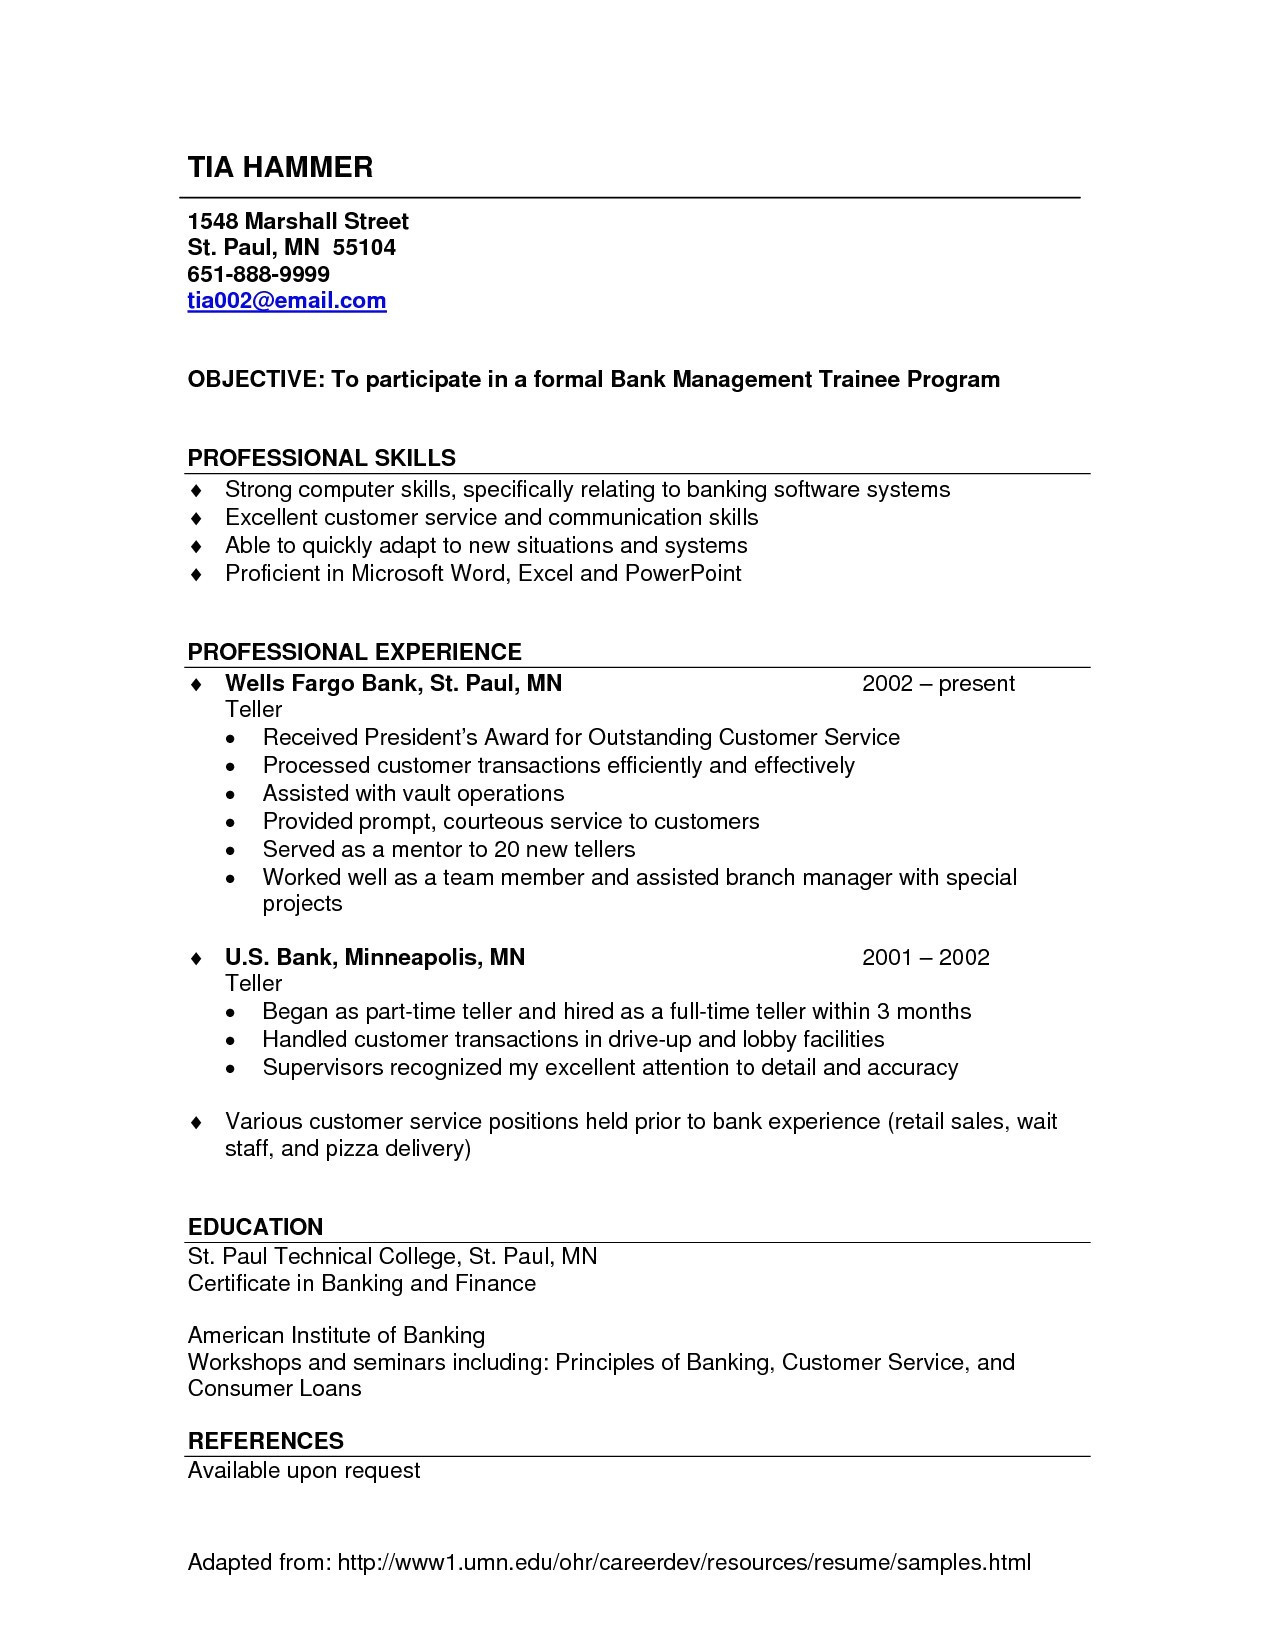 Banking Skills for Resume - Apa Resume Template New Examples A Resume Fresh Resume Examples 0d